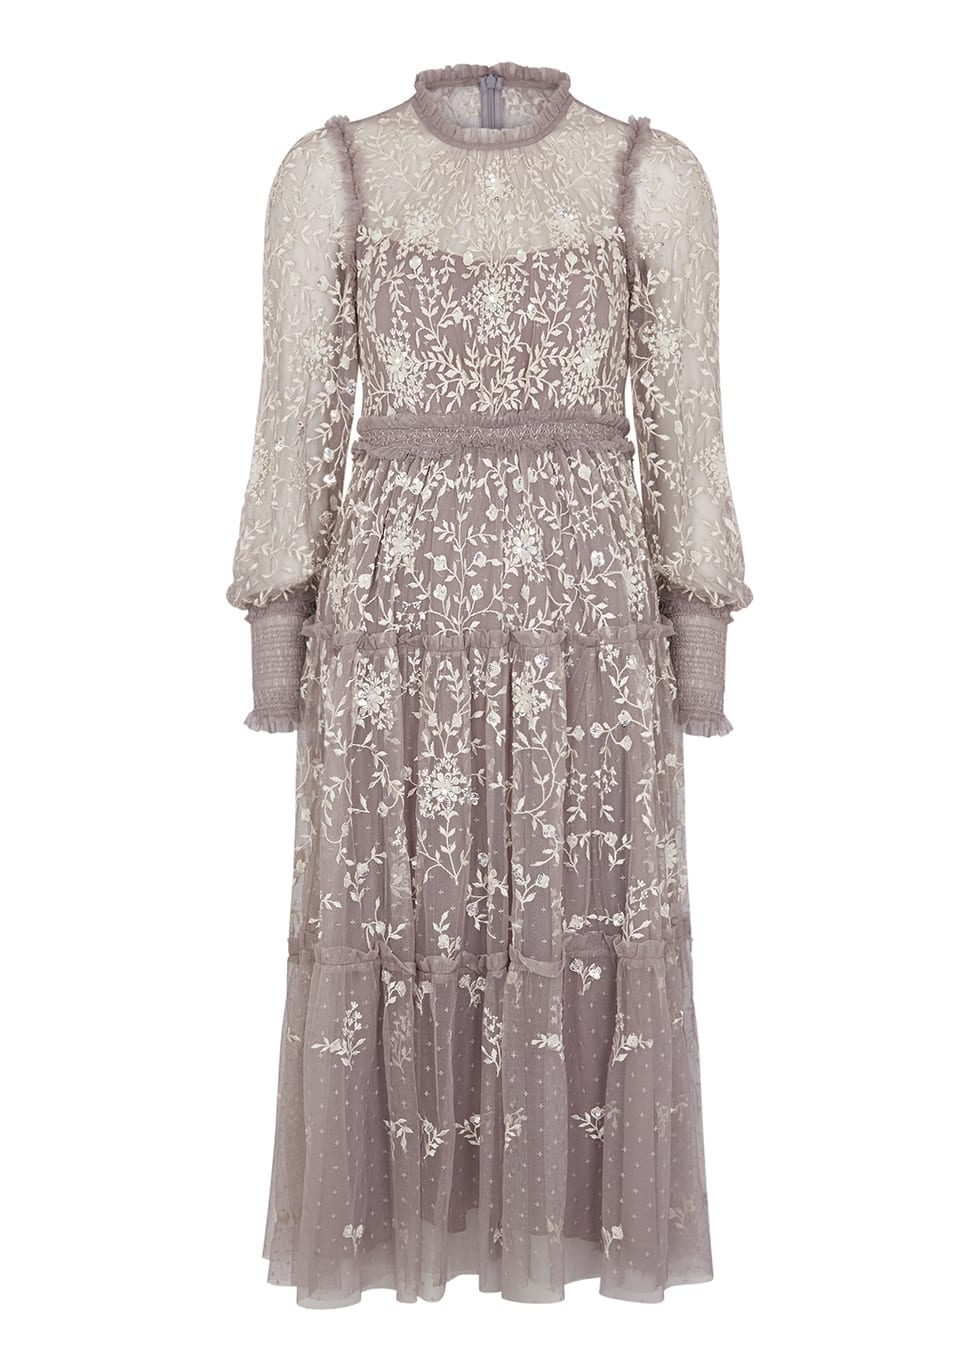 NEEDLE & THREAD Whitethorn Lilac Embroidered Tulle Dress